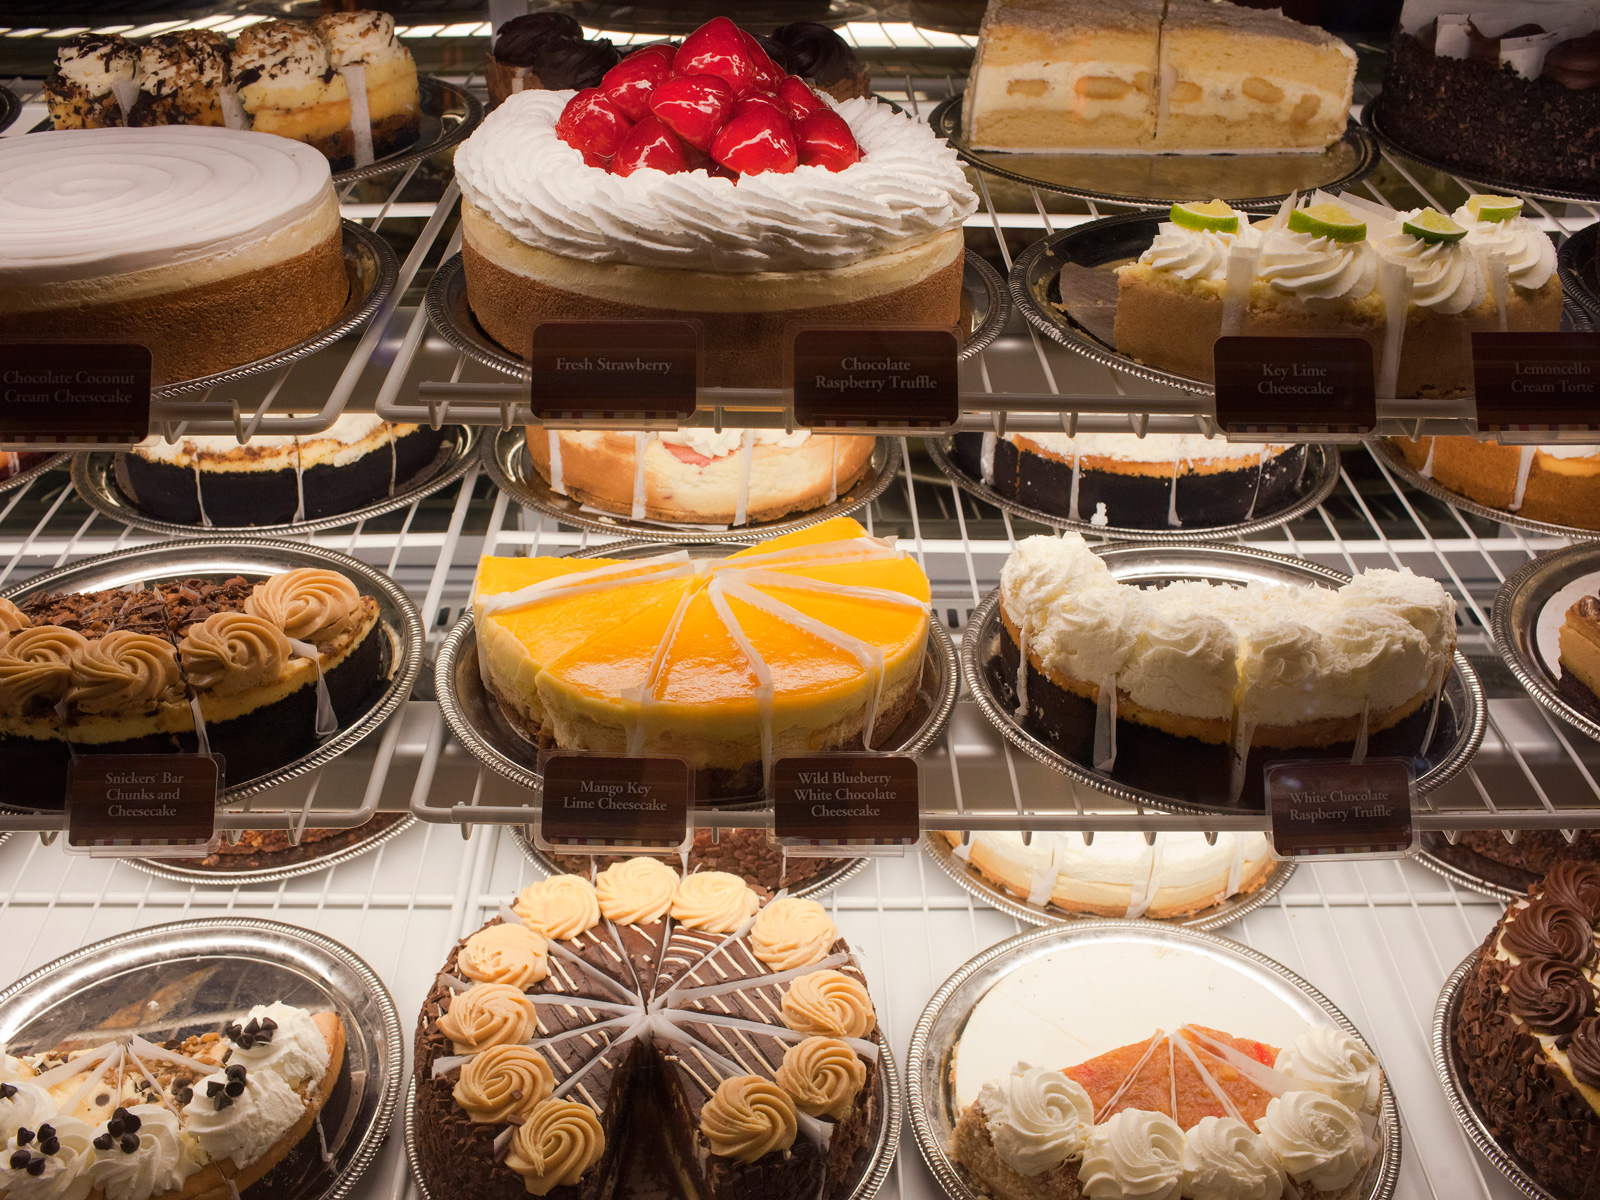 The Cheesecake Factory Will Donate a Meal for Every DoorDash Delivery This Month